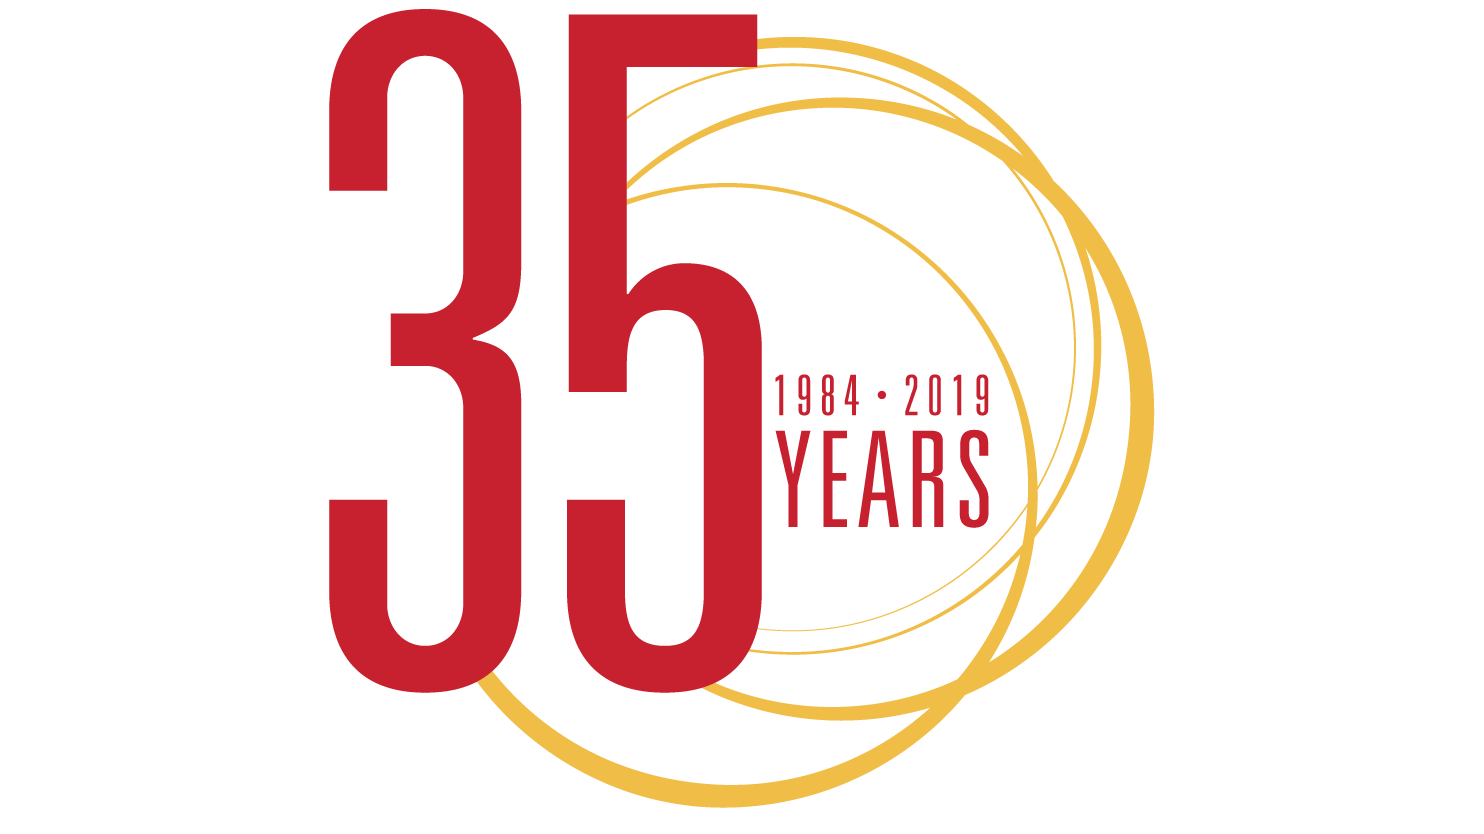 CCUR - Celebrating 35 Years